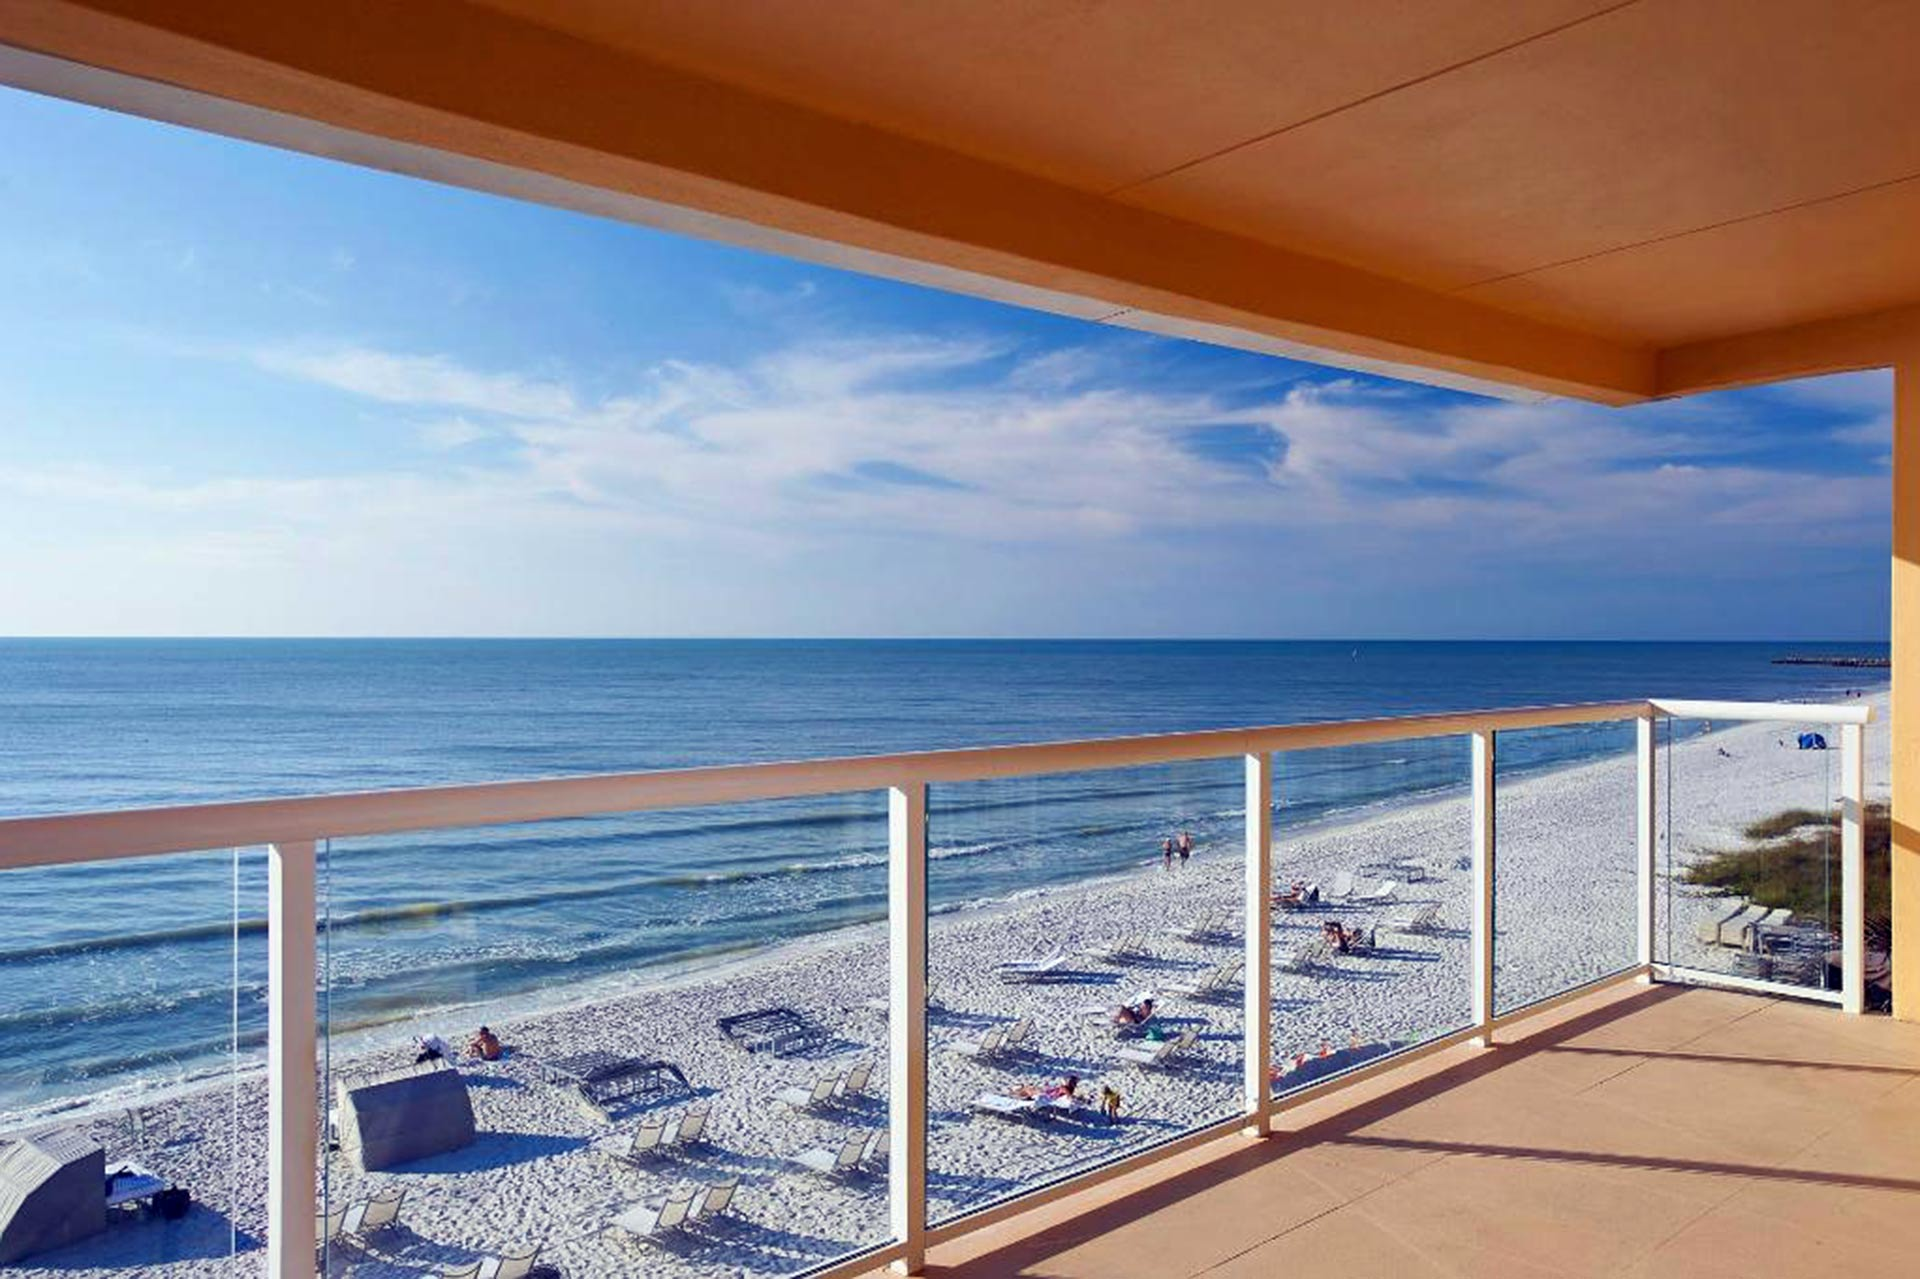 Edgewater Beach Hotel in Naples, Florida